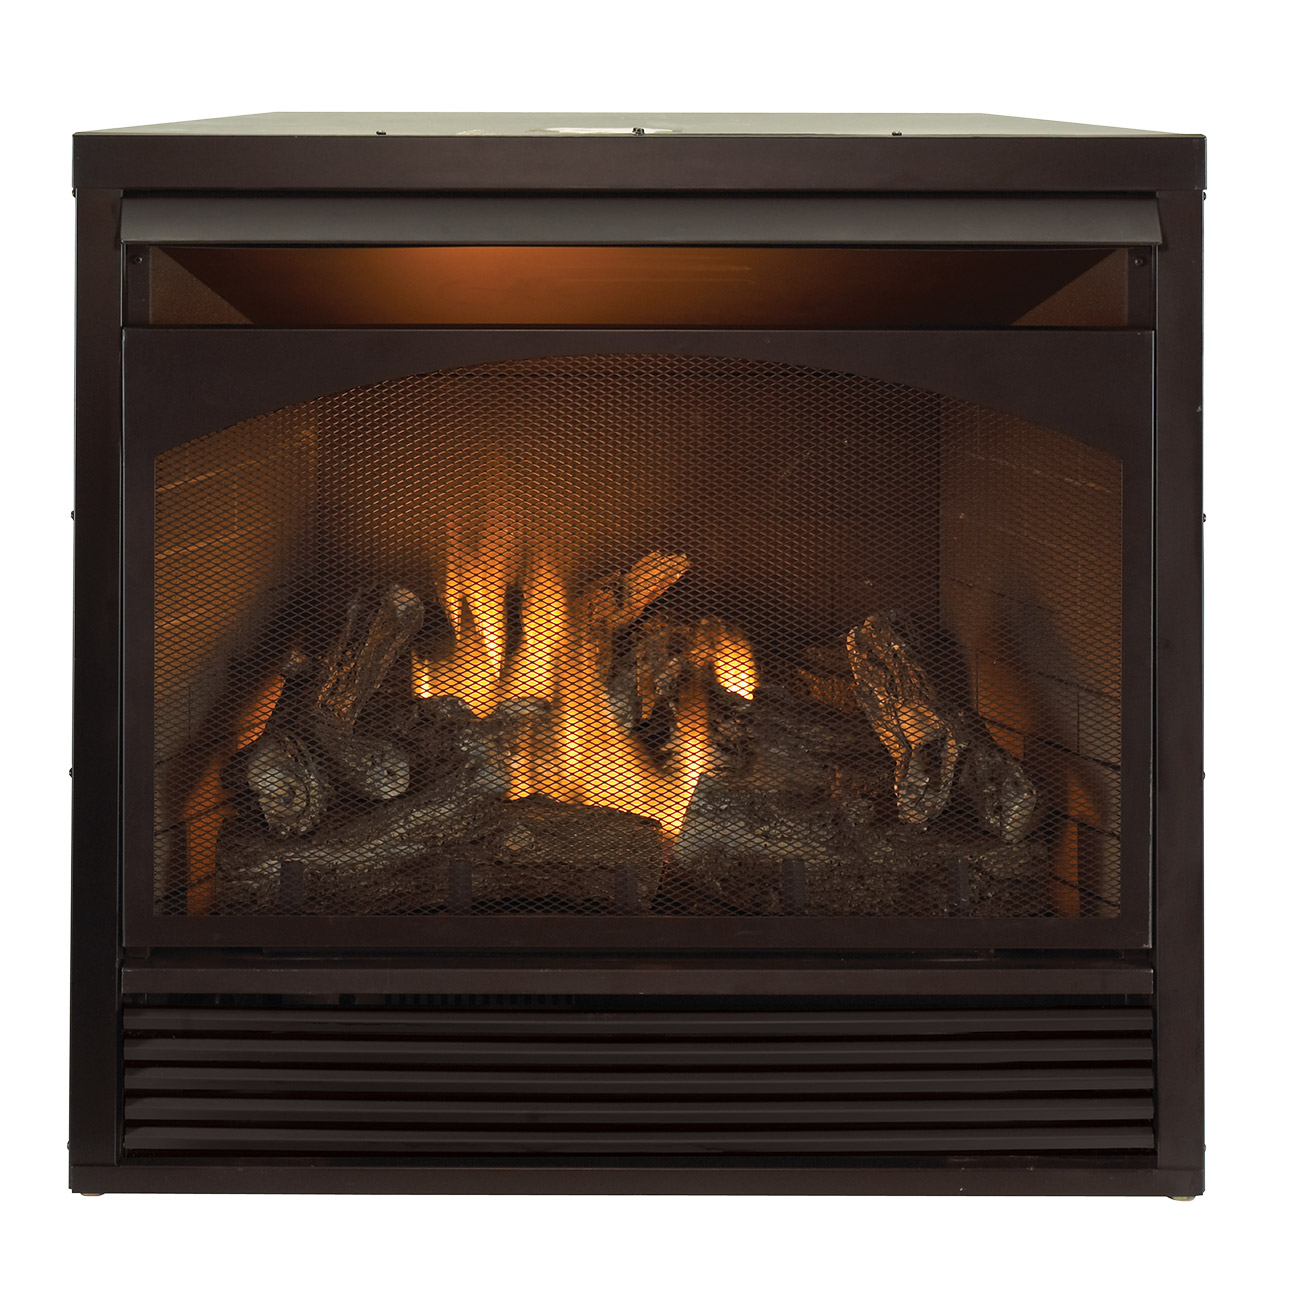 Ventless Fireplace Insert Model Fbd32rt